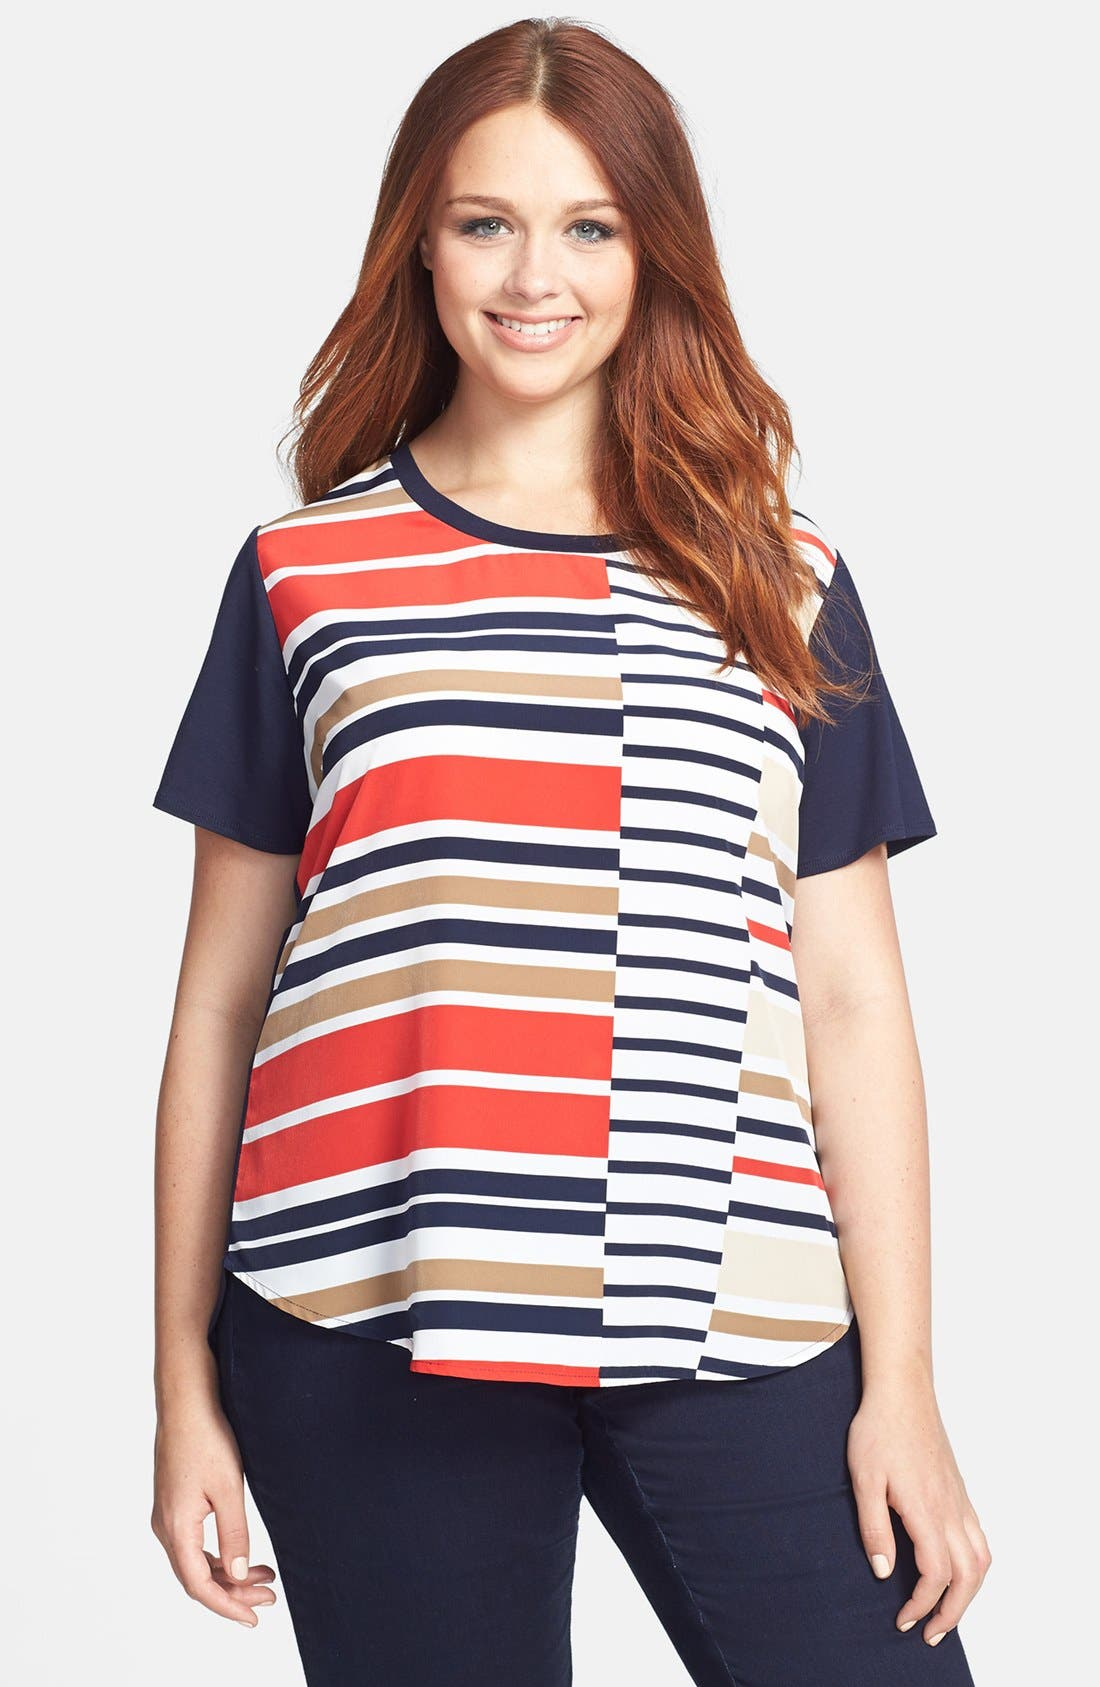 Main Image - Vince Camuto 'Legacy' Mixed Media Tee (Plus Size)